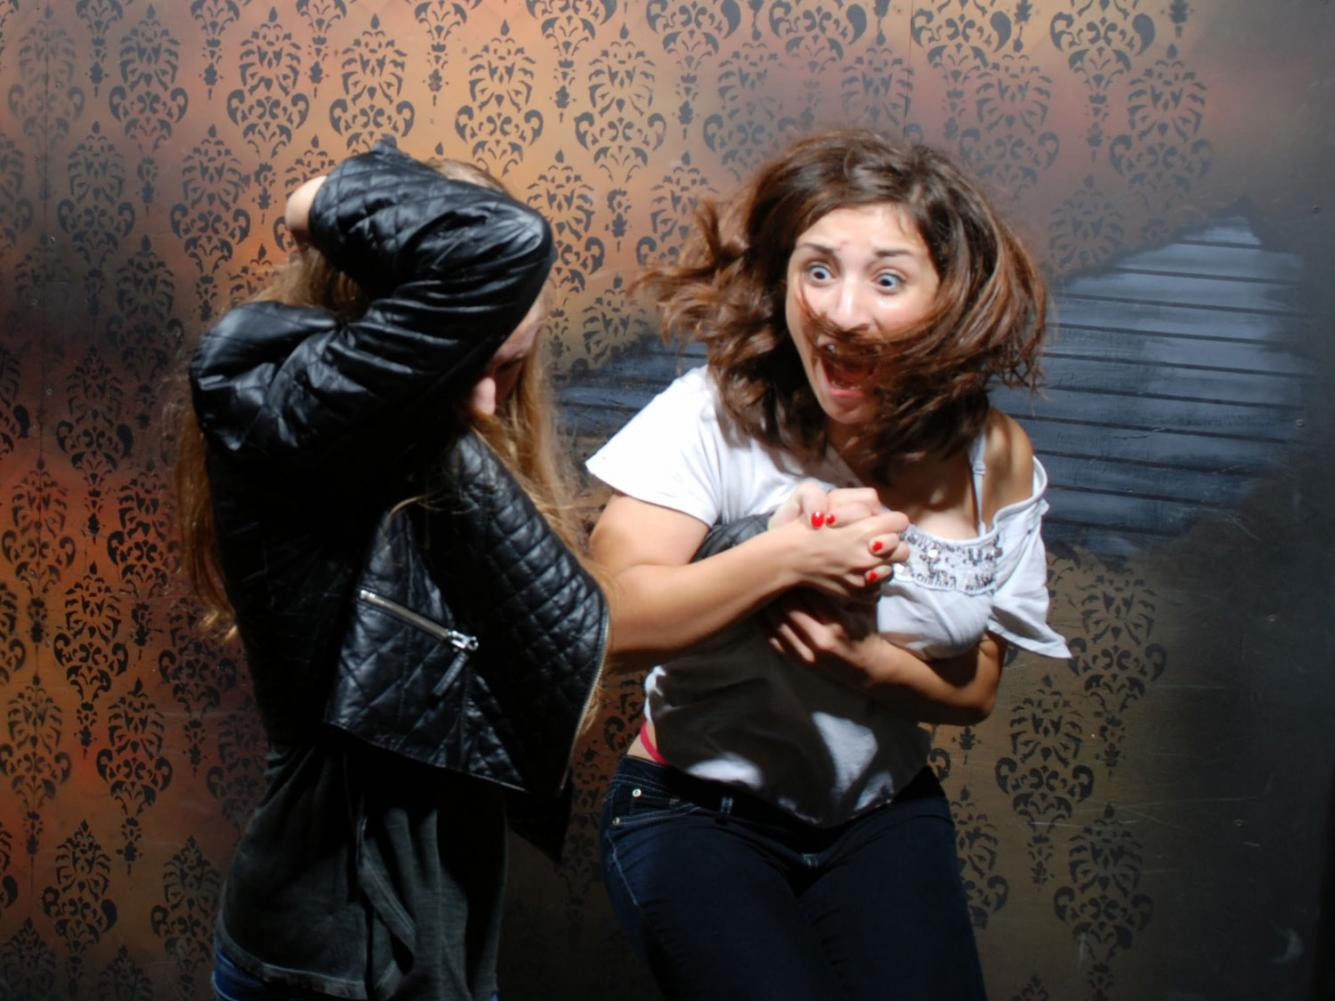 Nightmares Fear Factory Top 40 September 2013 pic0162